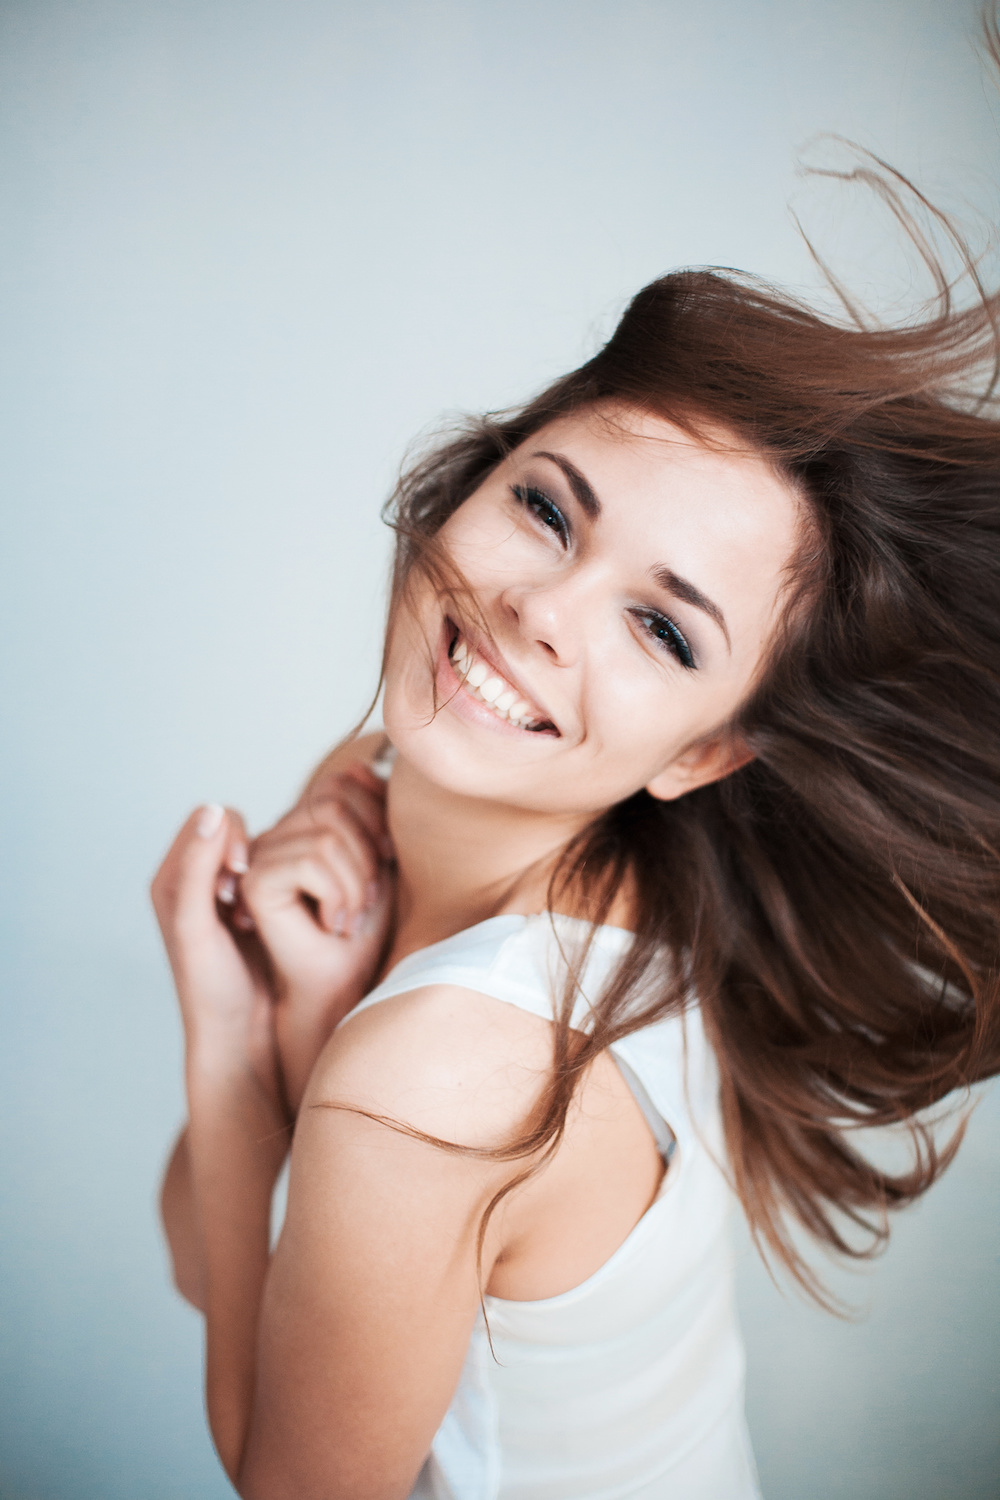 woman smiling while the wind blows back her hair